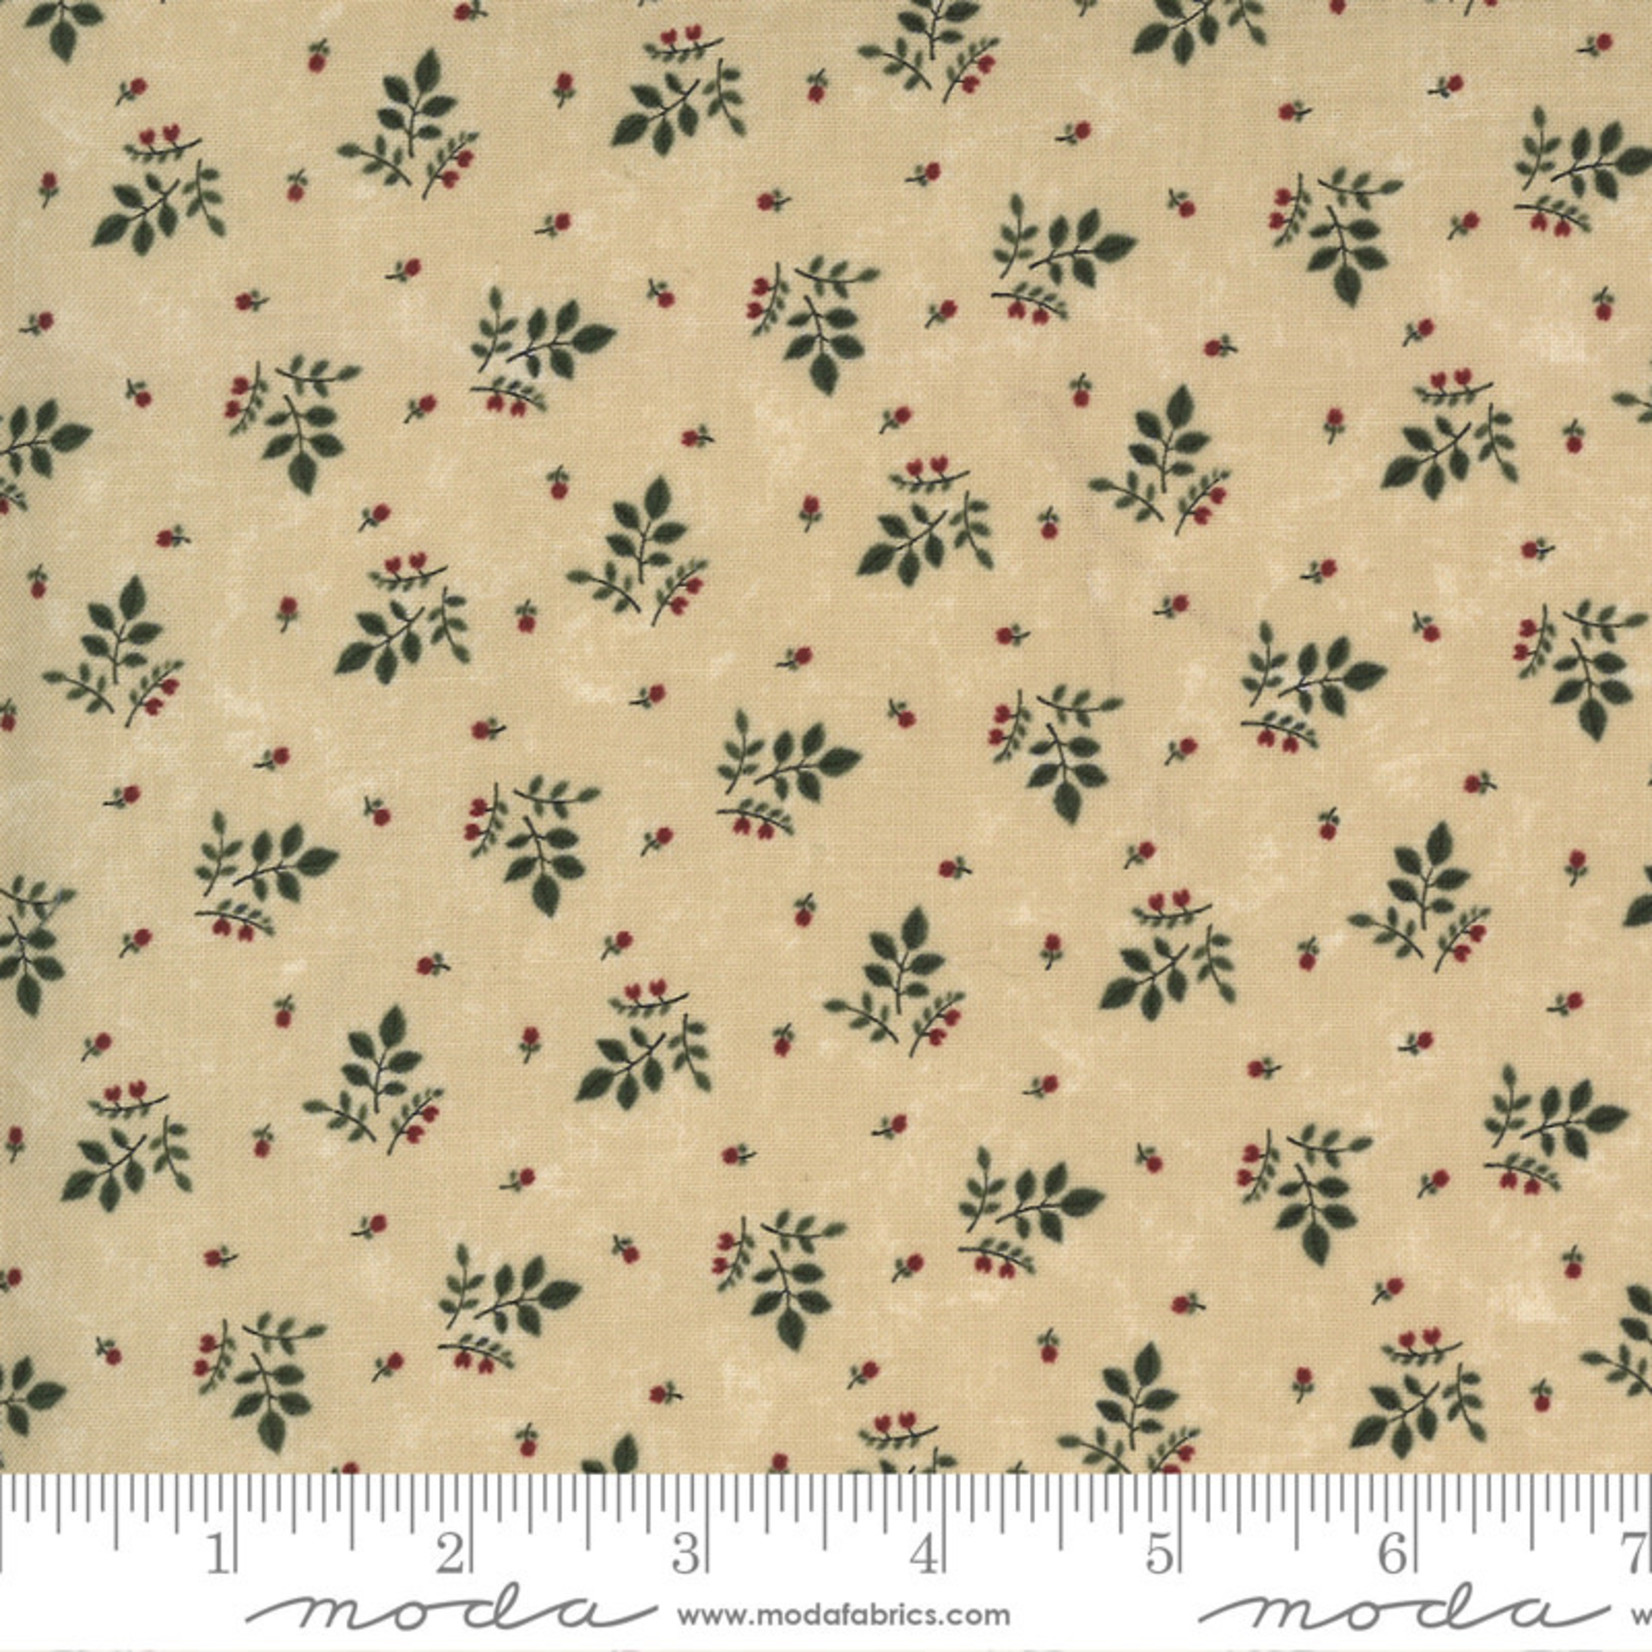 Kansas Troubles Quilters Prairie Dreams, Leaves Berries, Tan 9653 11 $0.20 per cm or $20/m